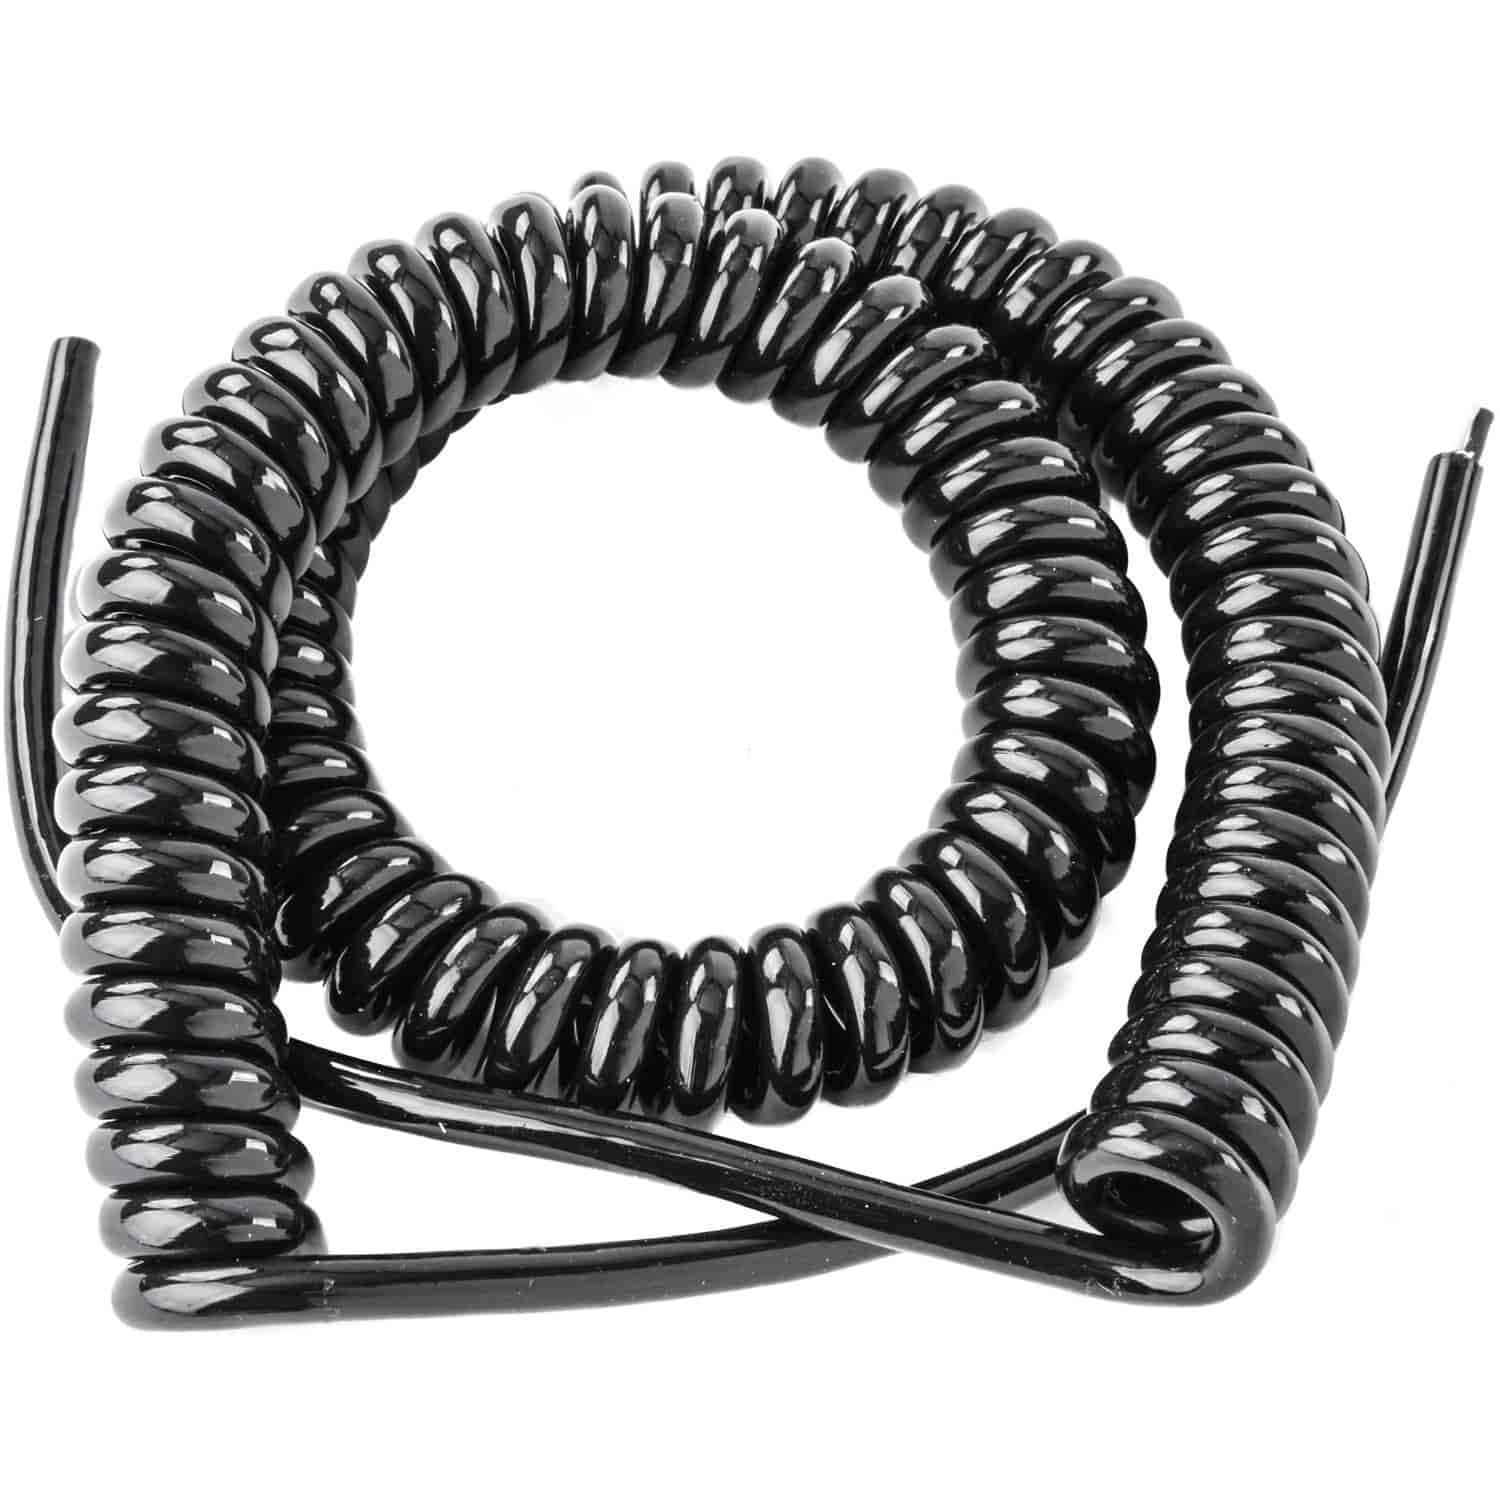 JEGS 10338: Coil Cord 18-Gauge, 2-Wire | JEGS